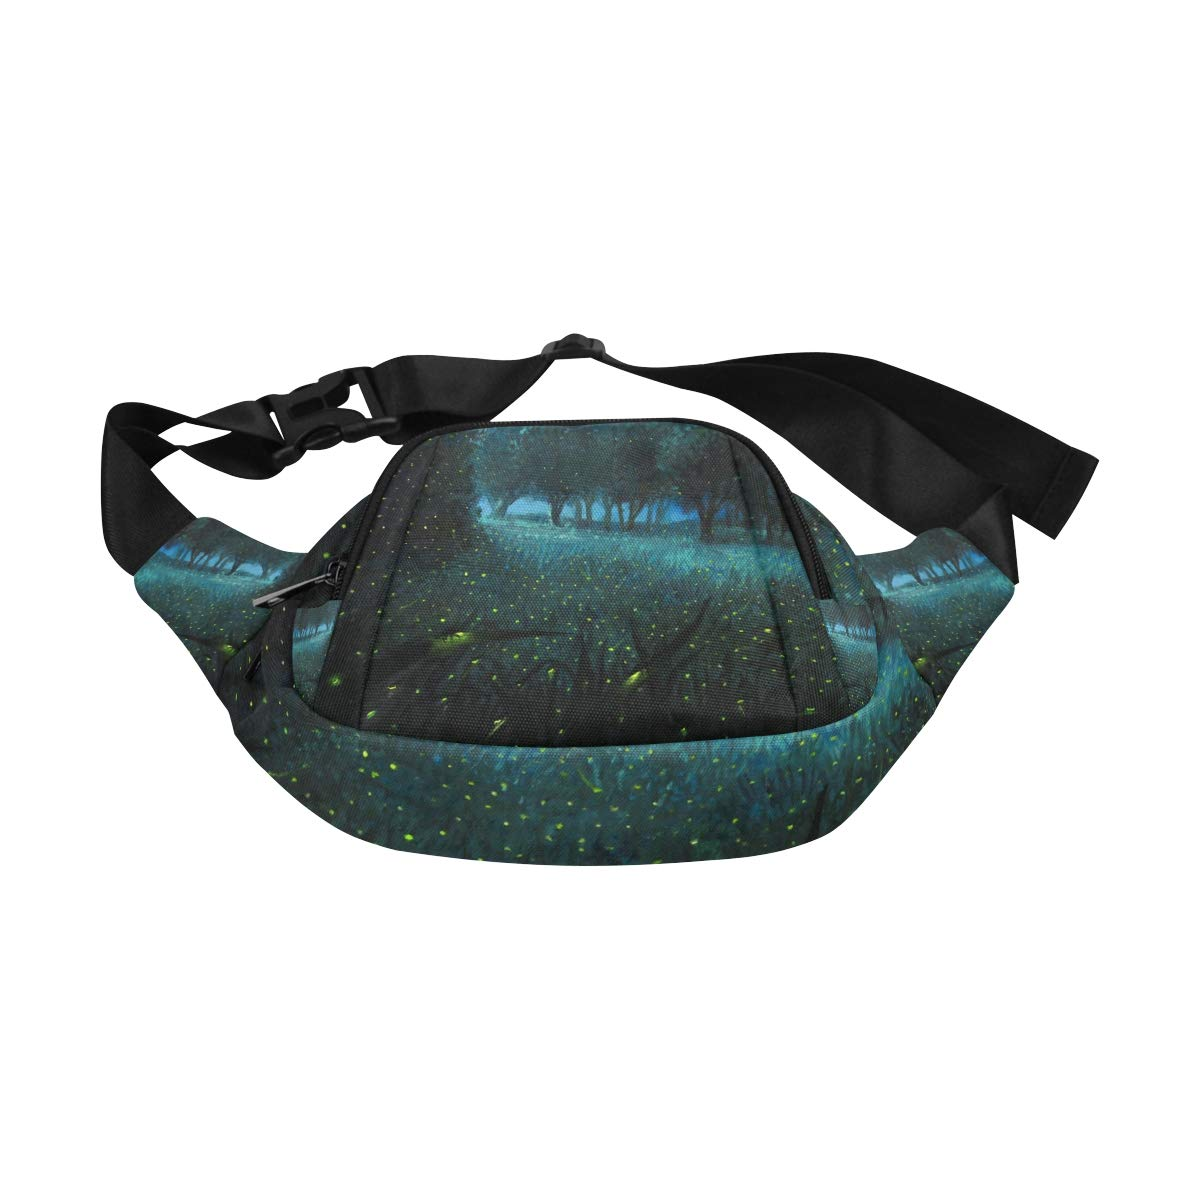 Many Fireflies Flying In The Fores Fenny Packs Waist Bags Adjustable Belt Waterproof Nylon Travel Running Sport Vacation Party For Men Women Boys Girls Kids